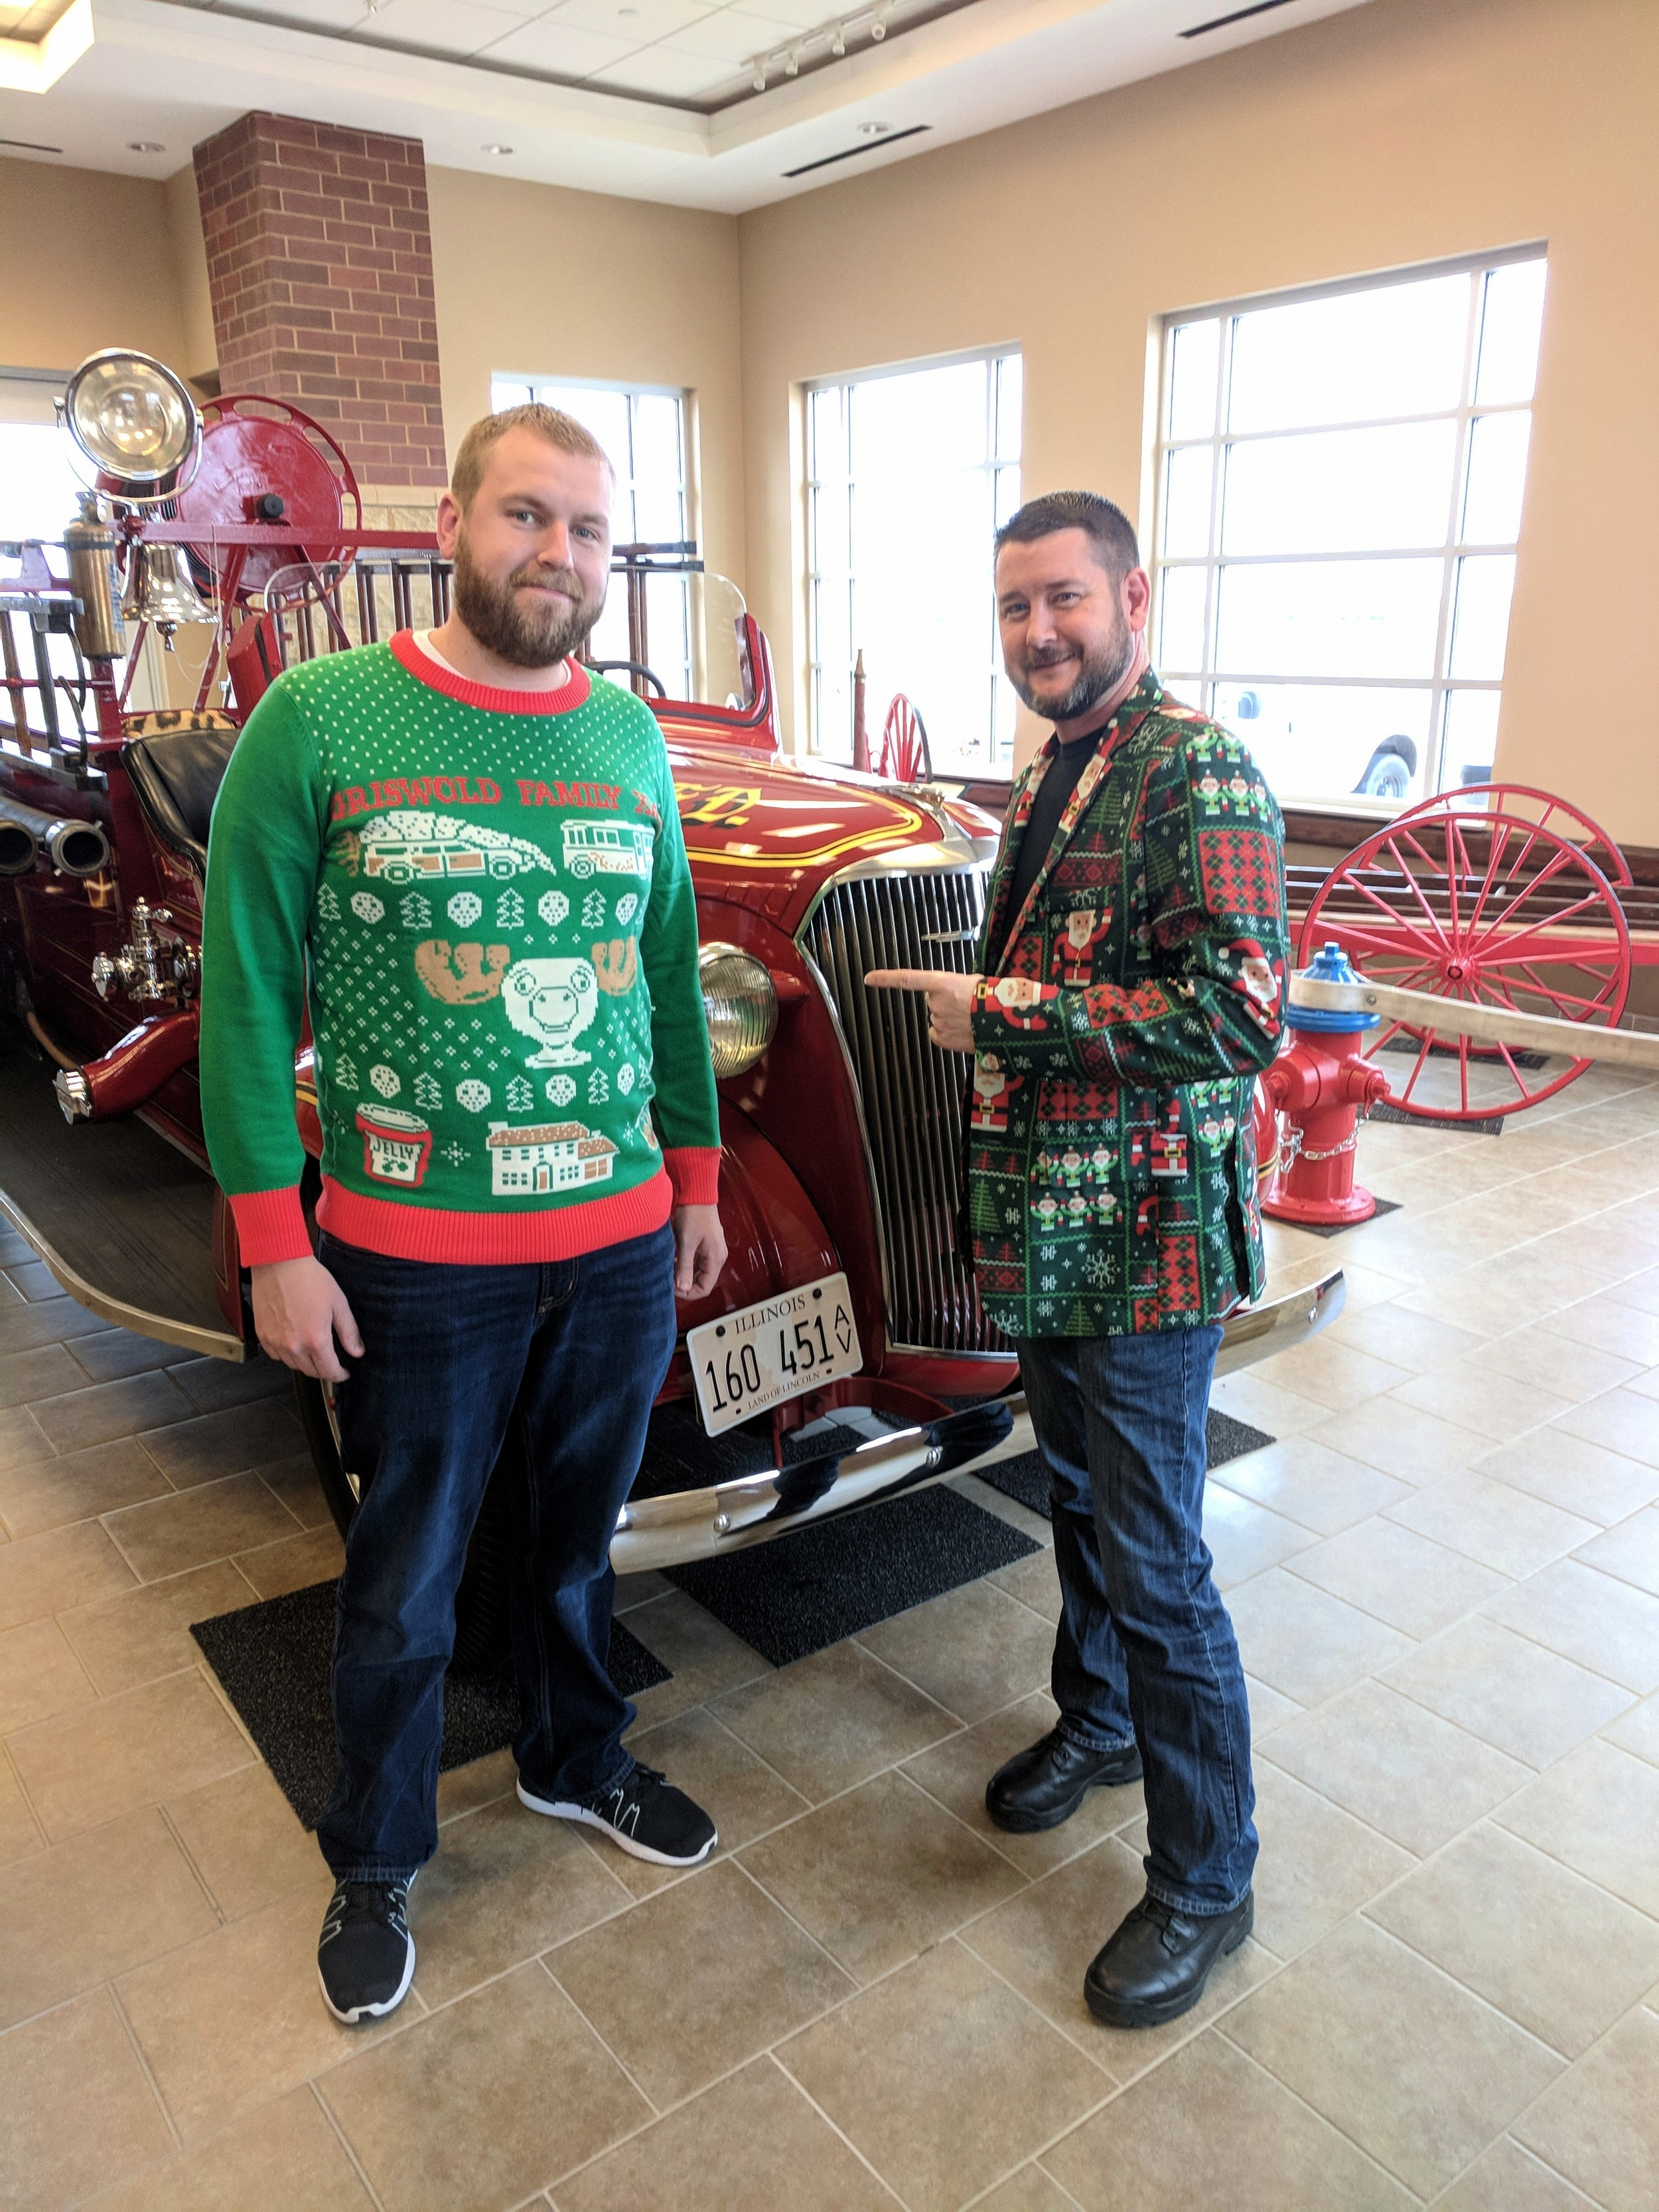 Morton, IL - Brian and Jason from Menard County, Illinois were in the Christmas spirit while attending the ArcGIS Solutions for Local Government Showcase.